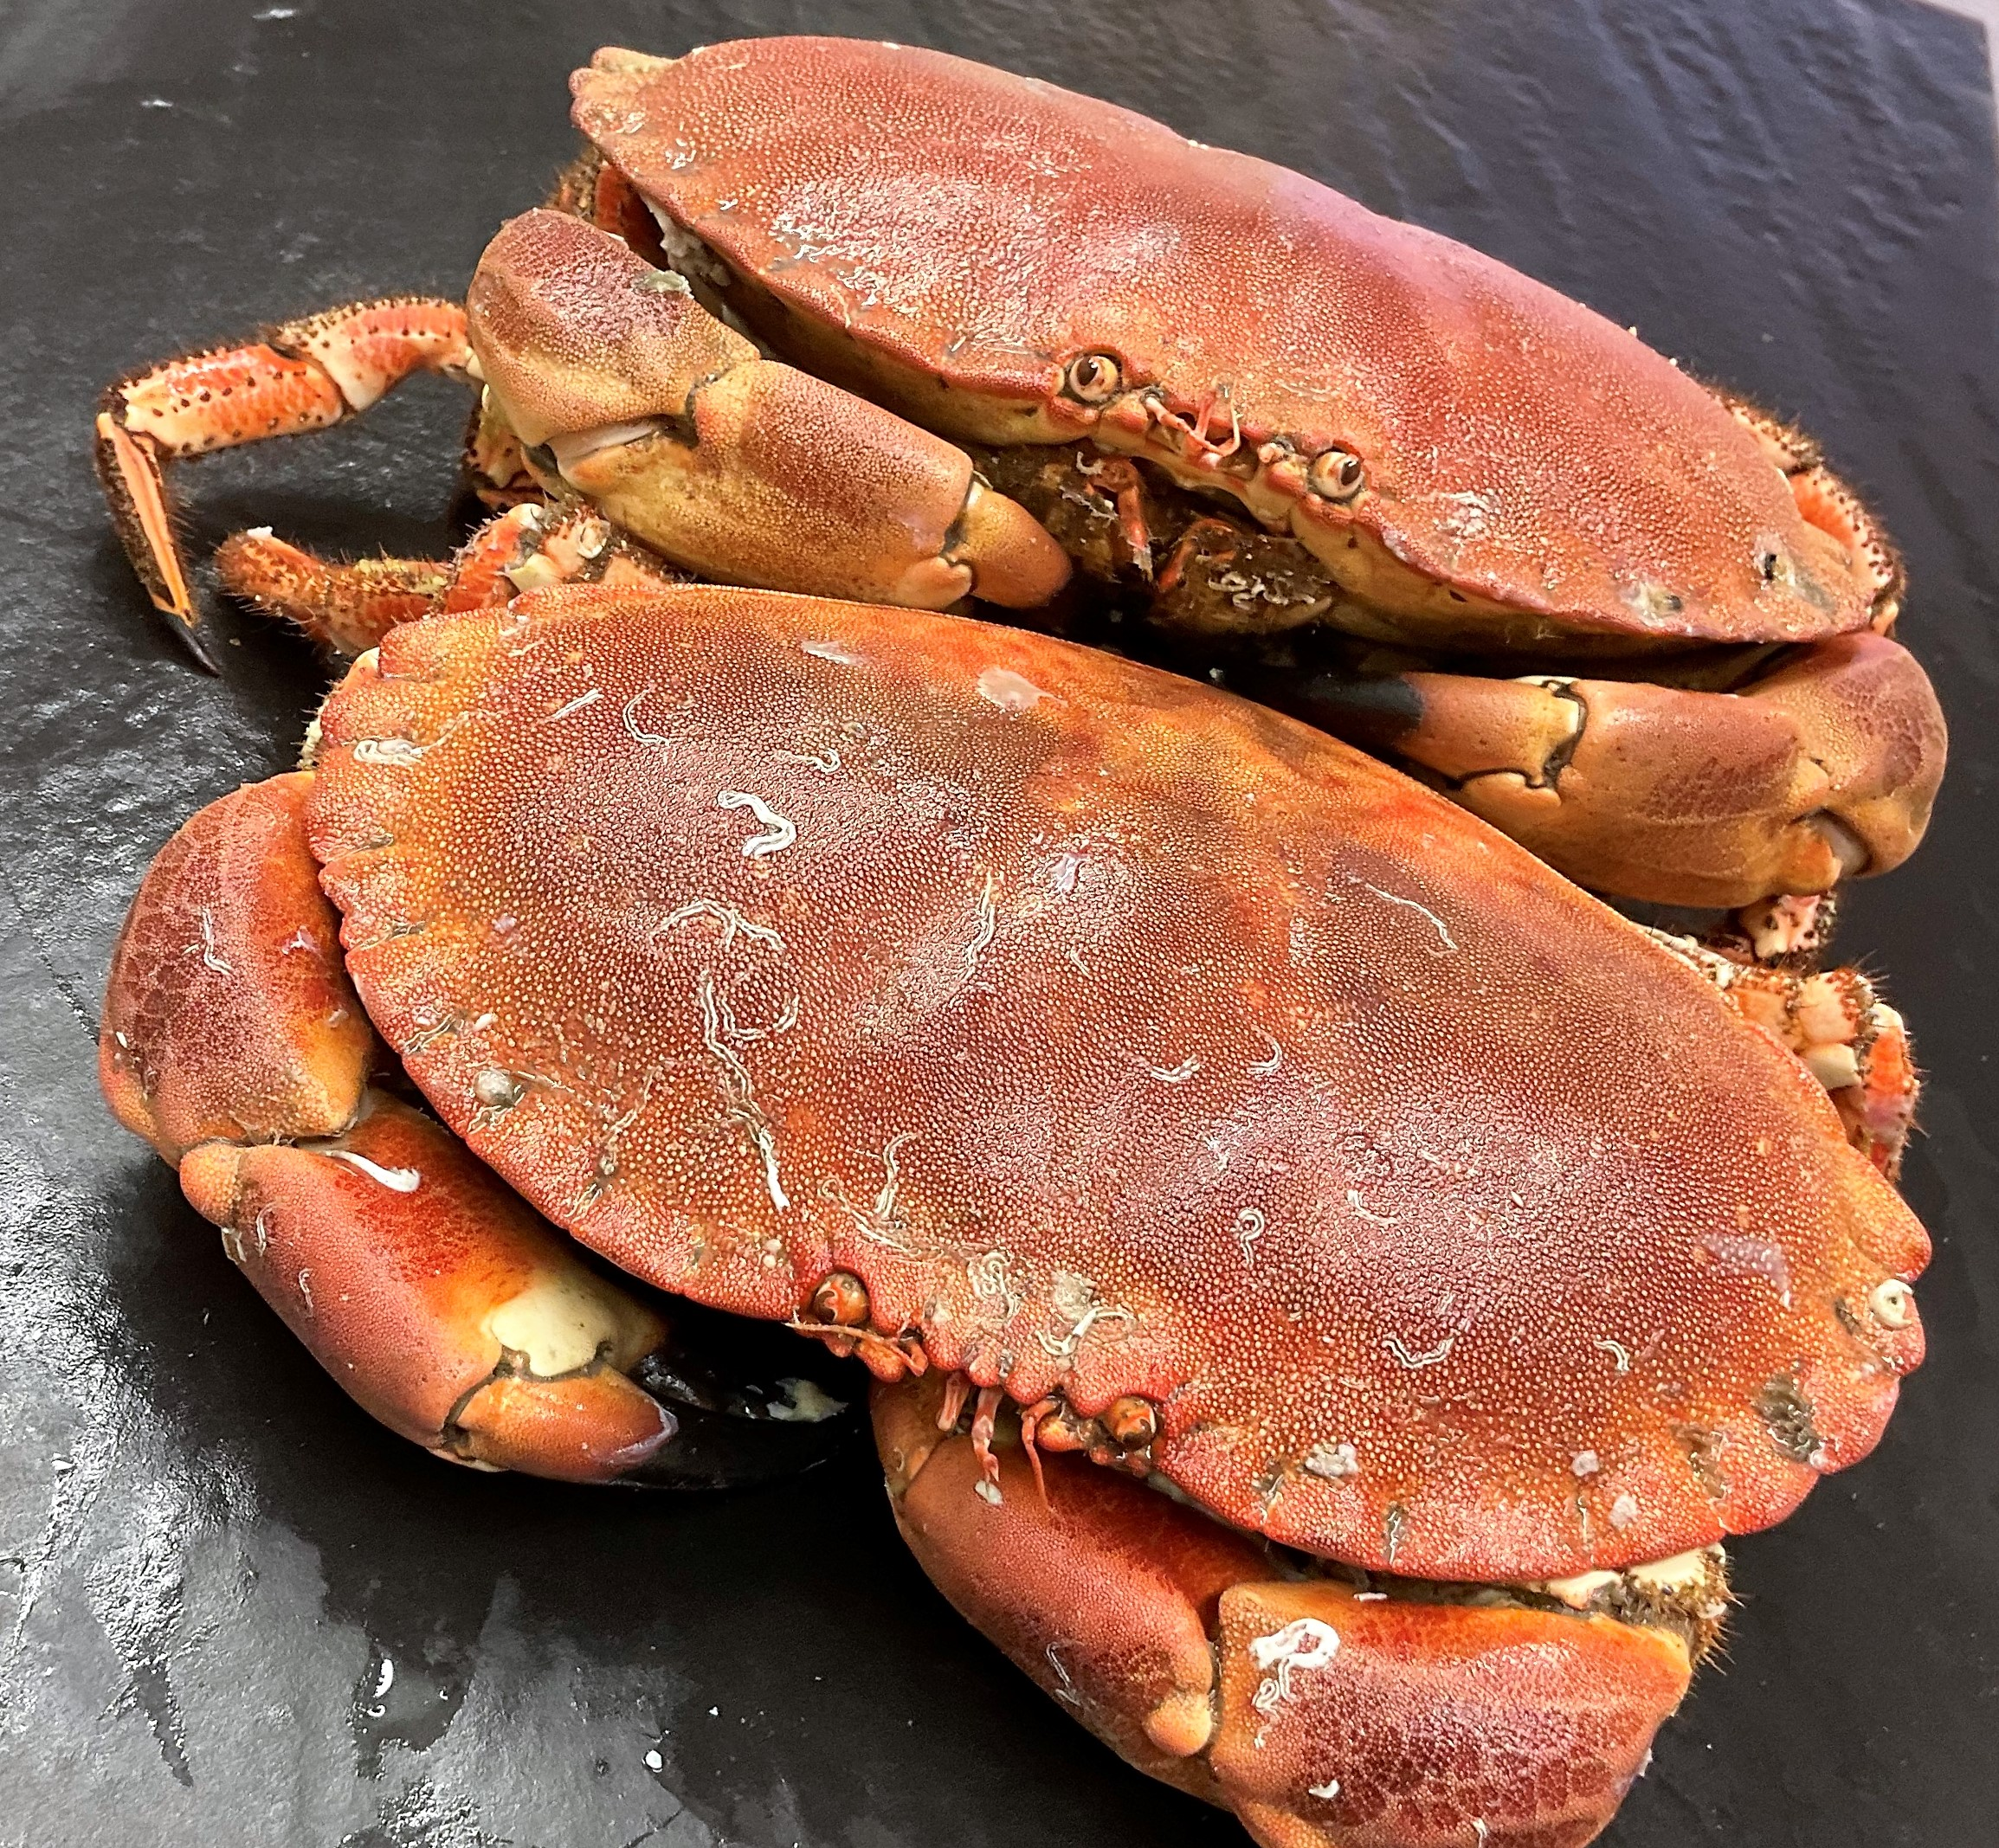 cooked whole crab